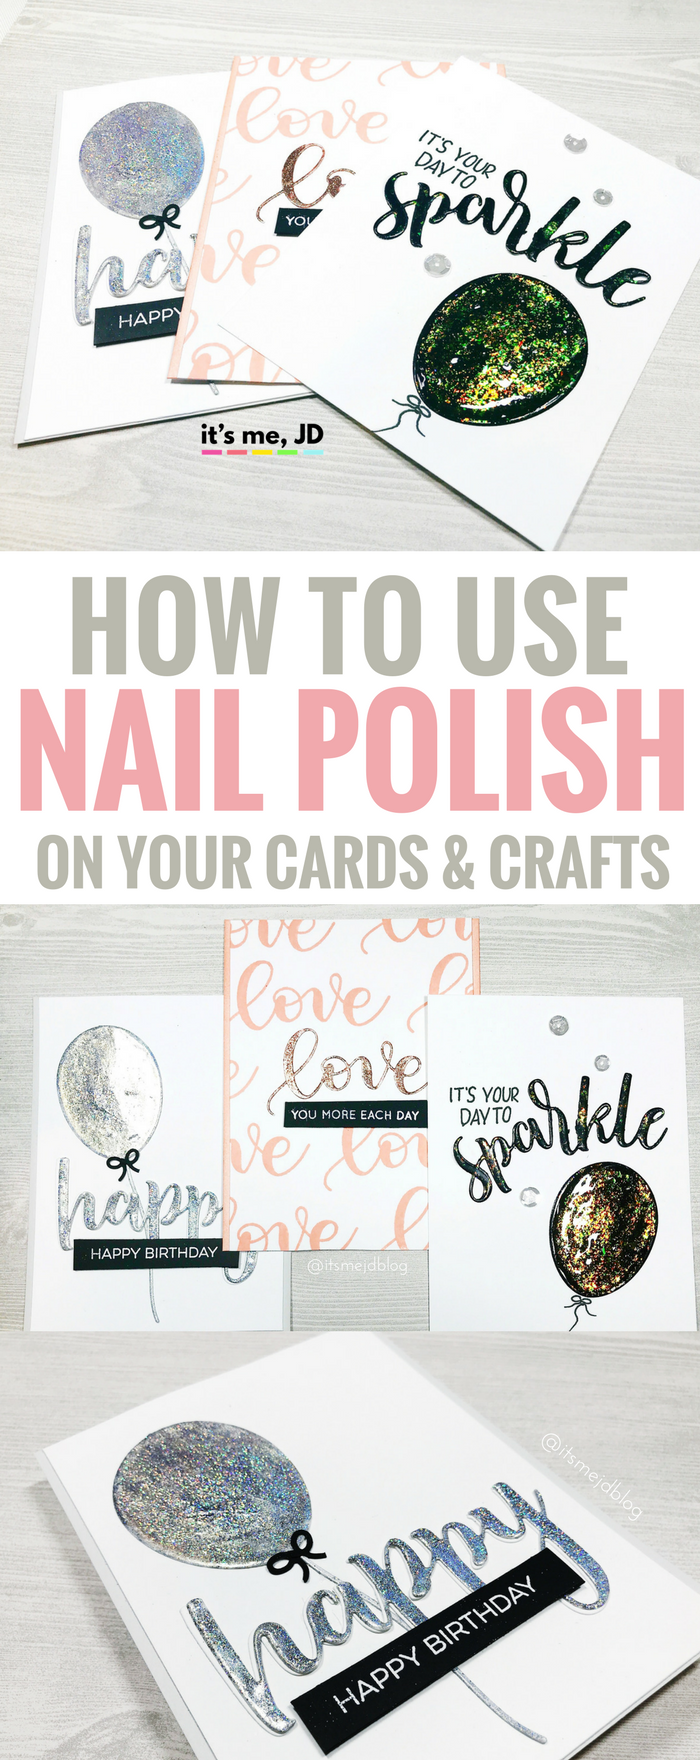 #cardmaking #crafts how to use nail polish on your cards and crafts